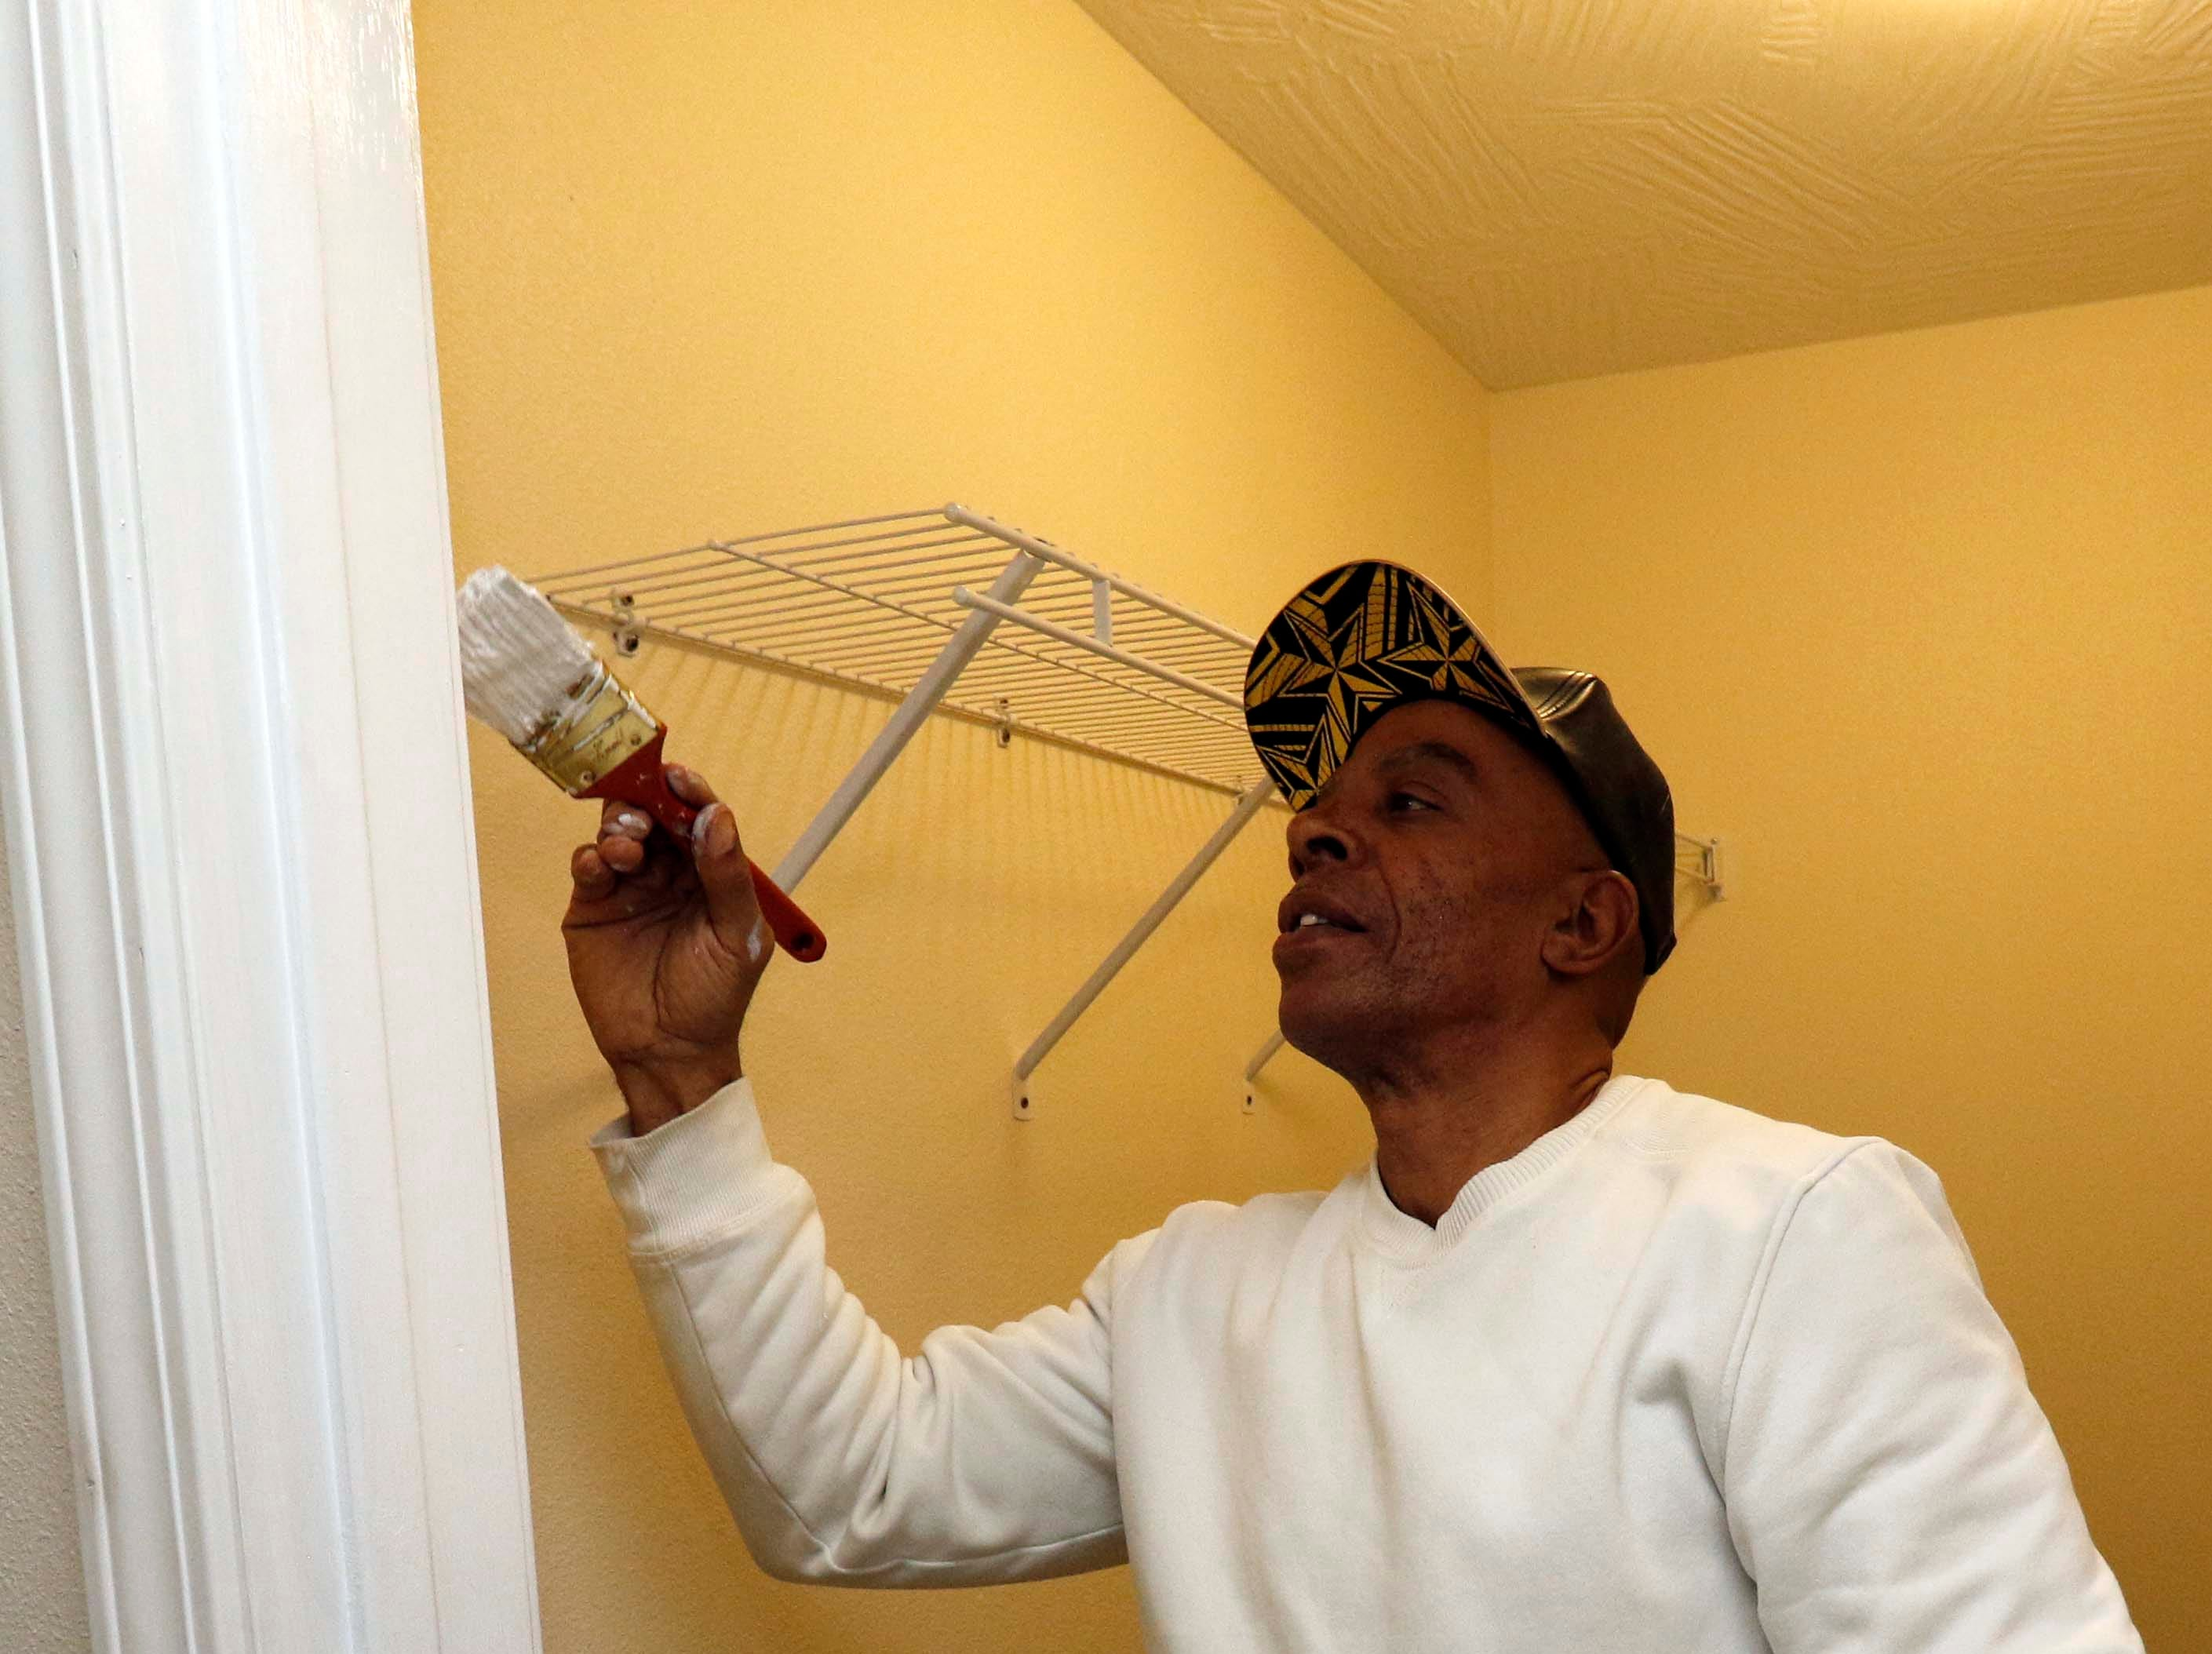 Leo Taylor-Bey works on the new Habitat for Humanity house on North Main in Springfield on Jan. 18, 2019.